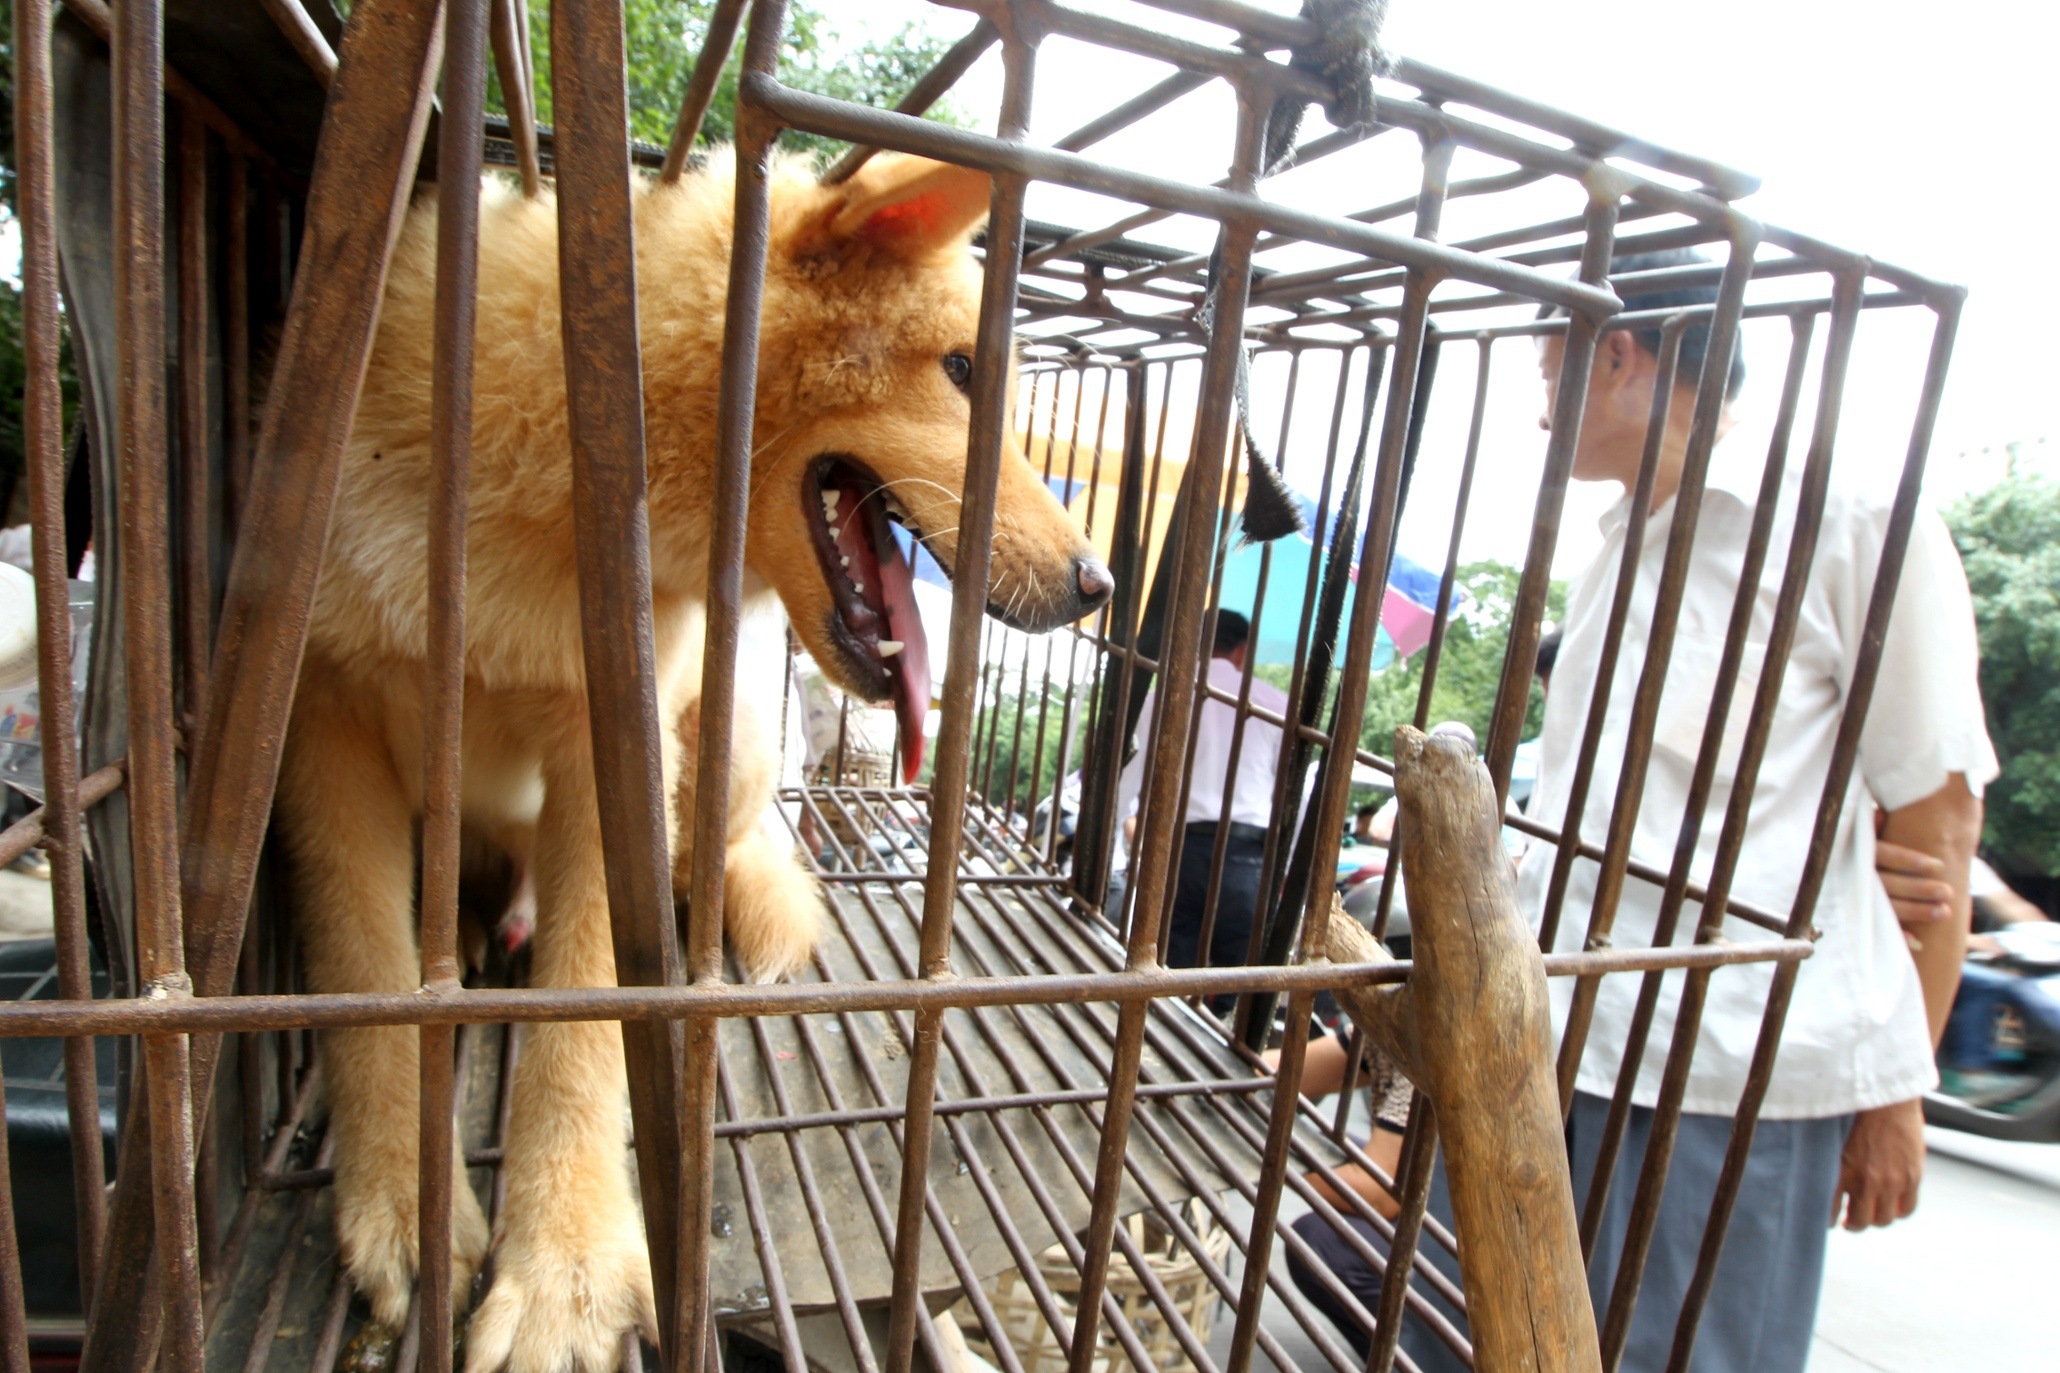 yulin single men Humane society international is in yulin they were chased by groups of unidentified men who would rip their banners i am the blog editor of a humane nation.